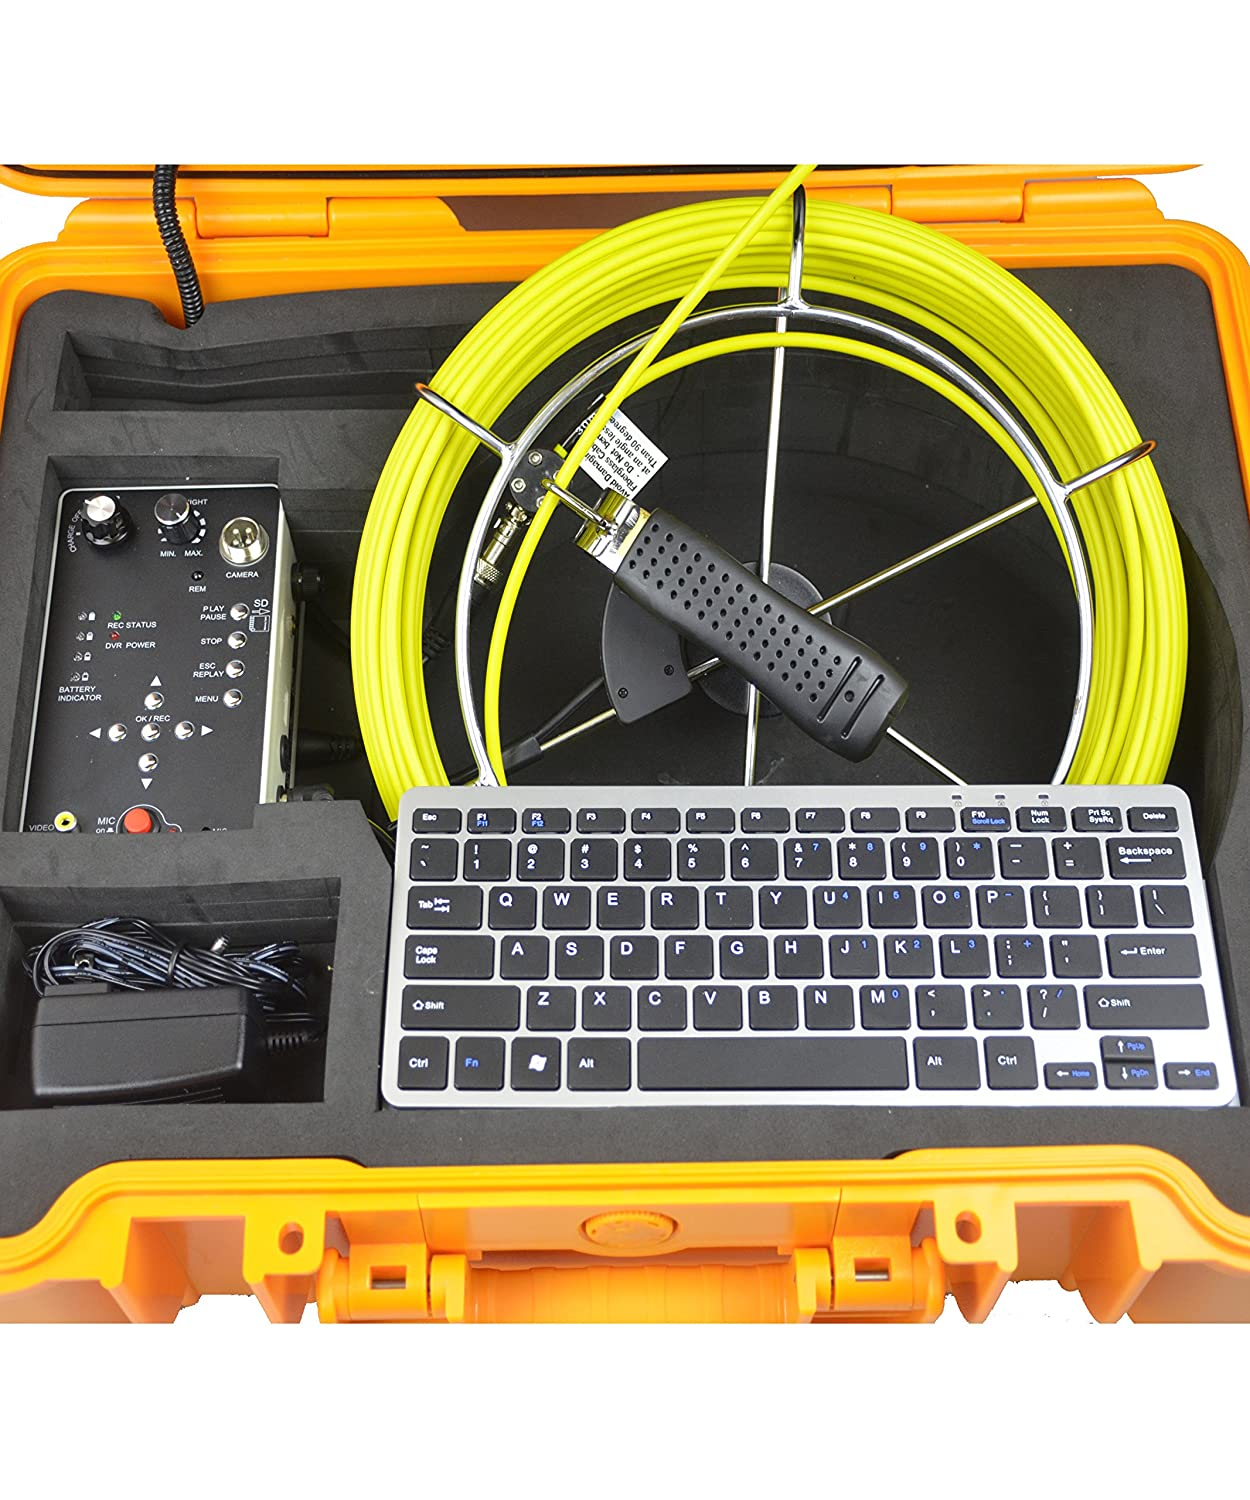 Video Audio Record Keyboard 512hz Sonde Distance Counter Photograph Rechargeable 6600mah Battery Self Leveling Video Inspection Drain Camera Survey Sewer Pipe Camera with 130ft Cable LED Adjust